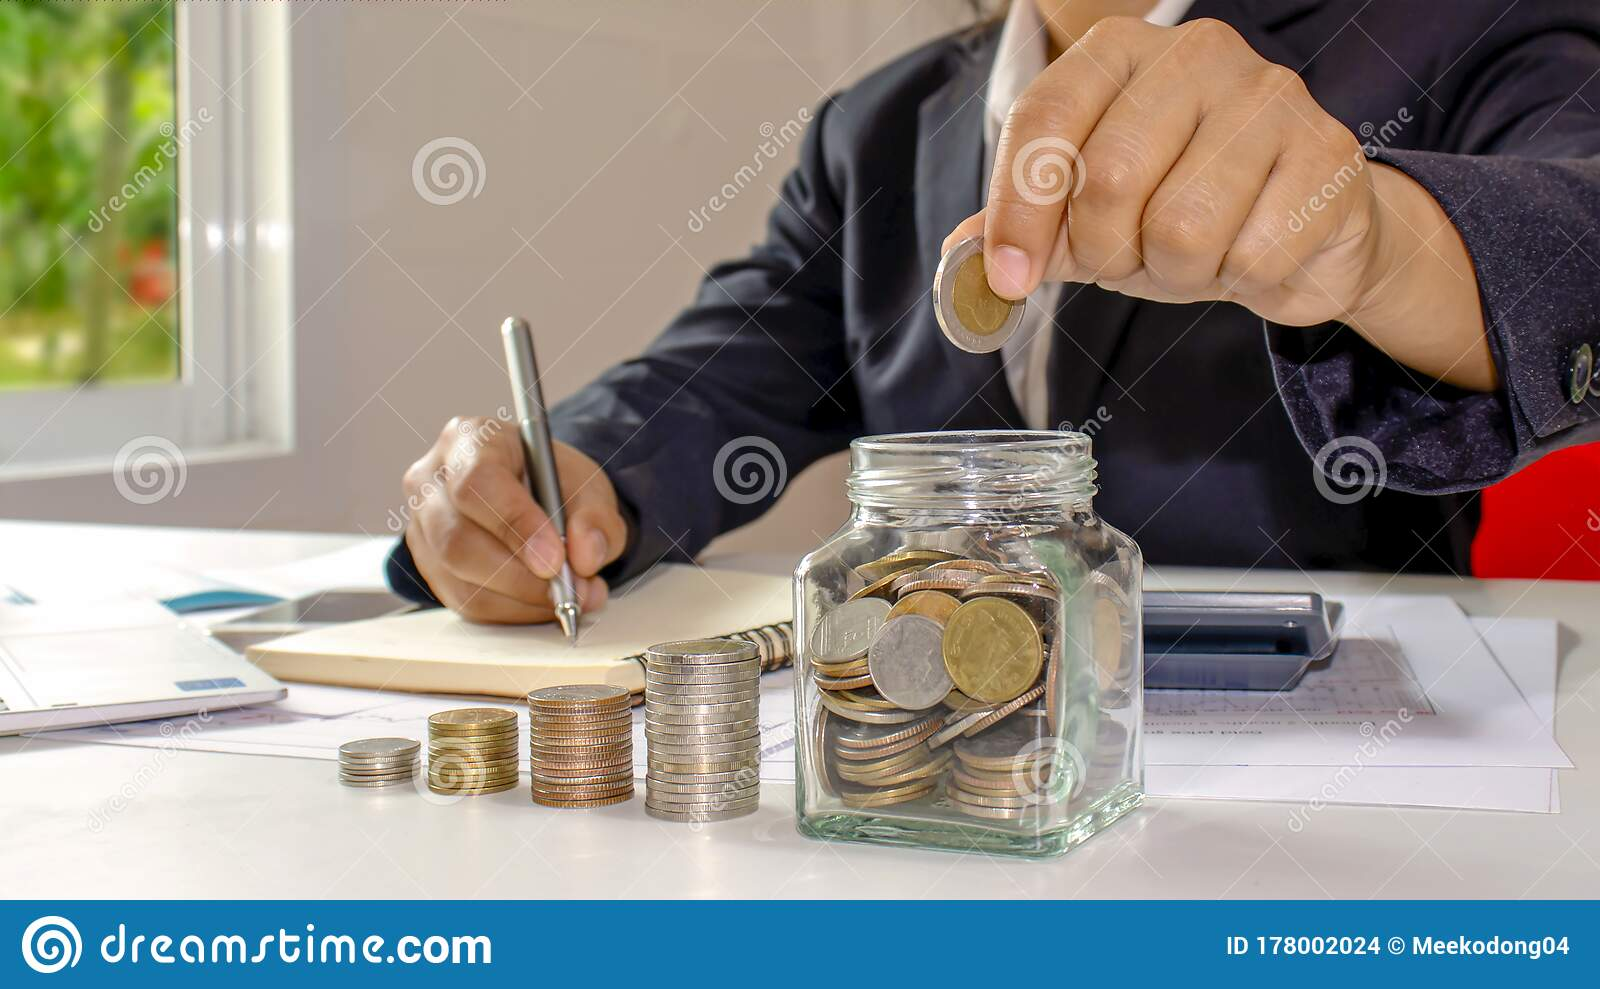 Business Women Who Are Putting Coins In A Jar Of Money Including A Notebook On A Wooden Desk For Work Ideas For Saving Money Stock Photo Image Of Accounting Debt 178002024